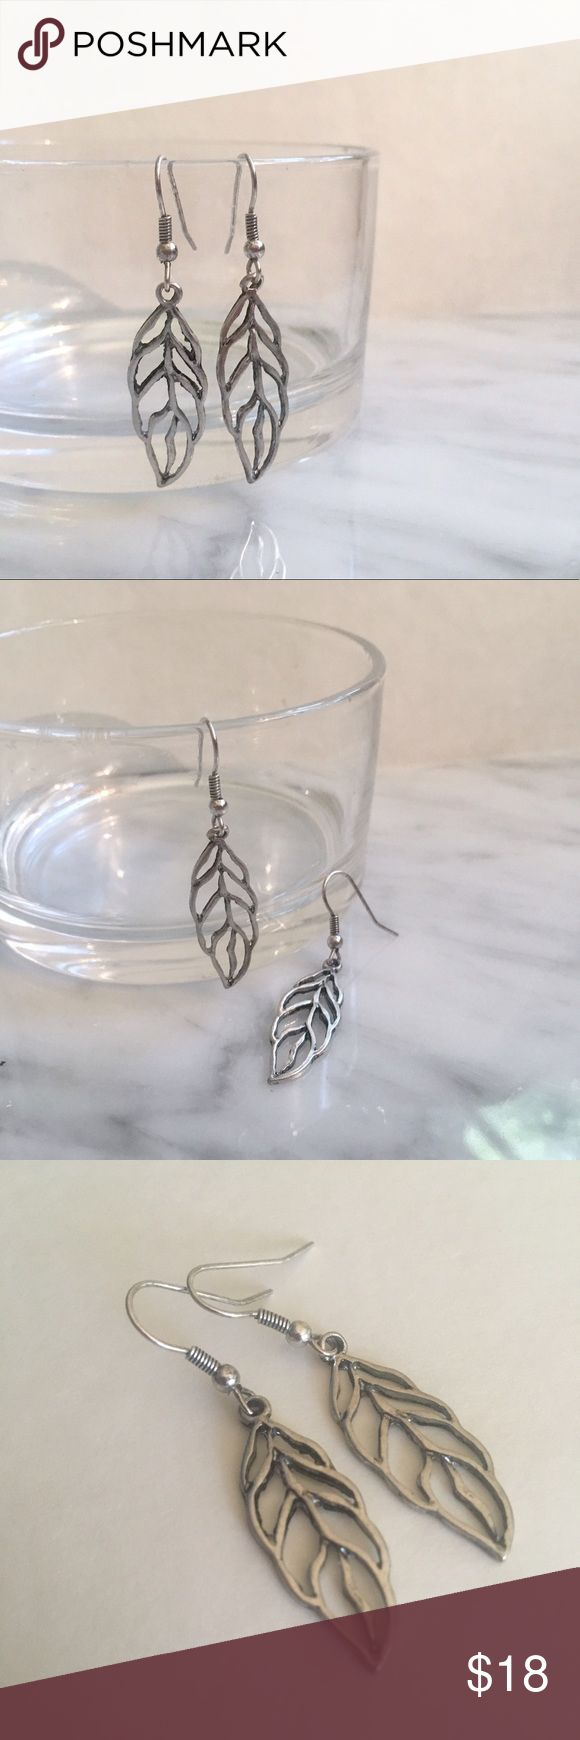 "Chic & Delicate Boho Leaf Cut-Out Dangle Earrings Gorgeous delicate filigree Leaf cut-out style dangle earrings.  Shepard's hook back. Chic and dainty statement earring. Metal leaf approx 1.5."" EXCELLENT condition, never worn! Purchased at Pike Place Market in Seattle. Jewelry Earrings"